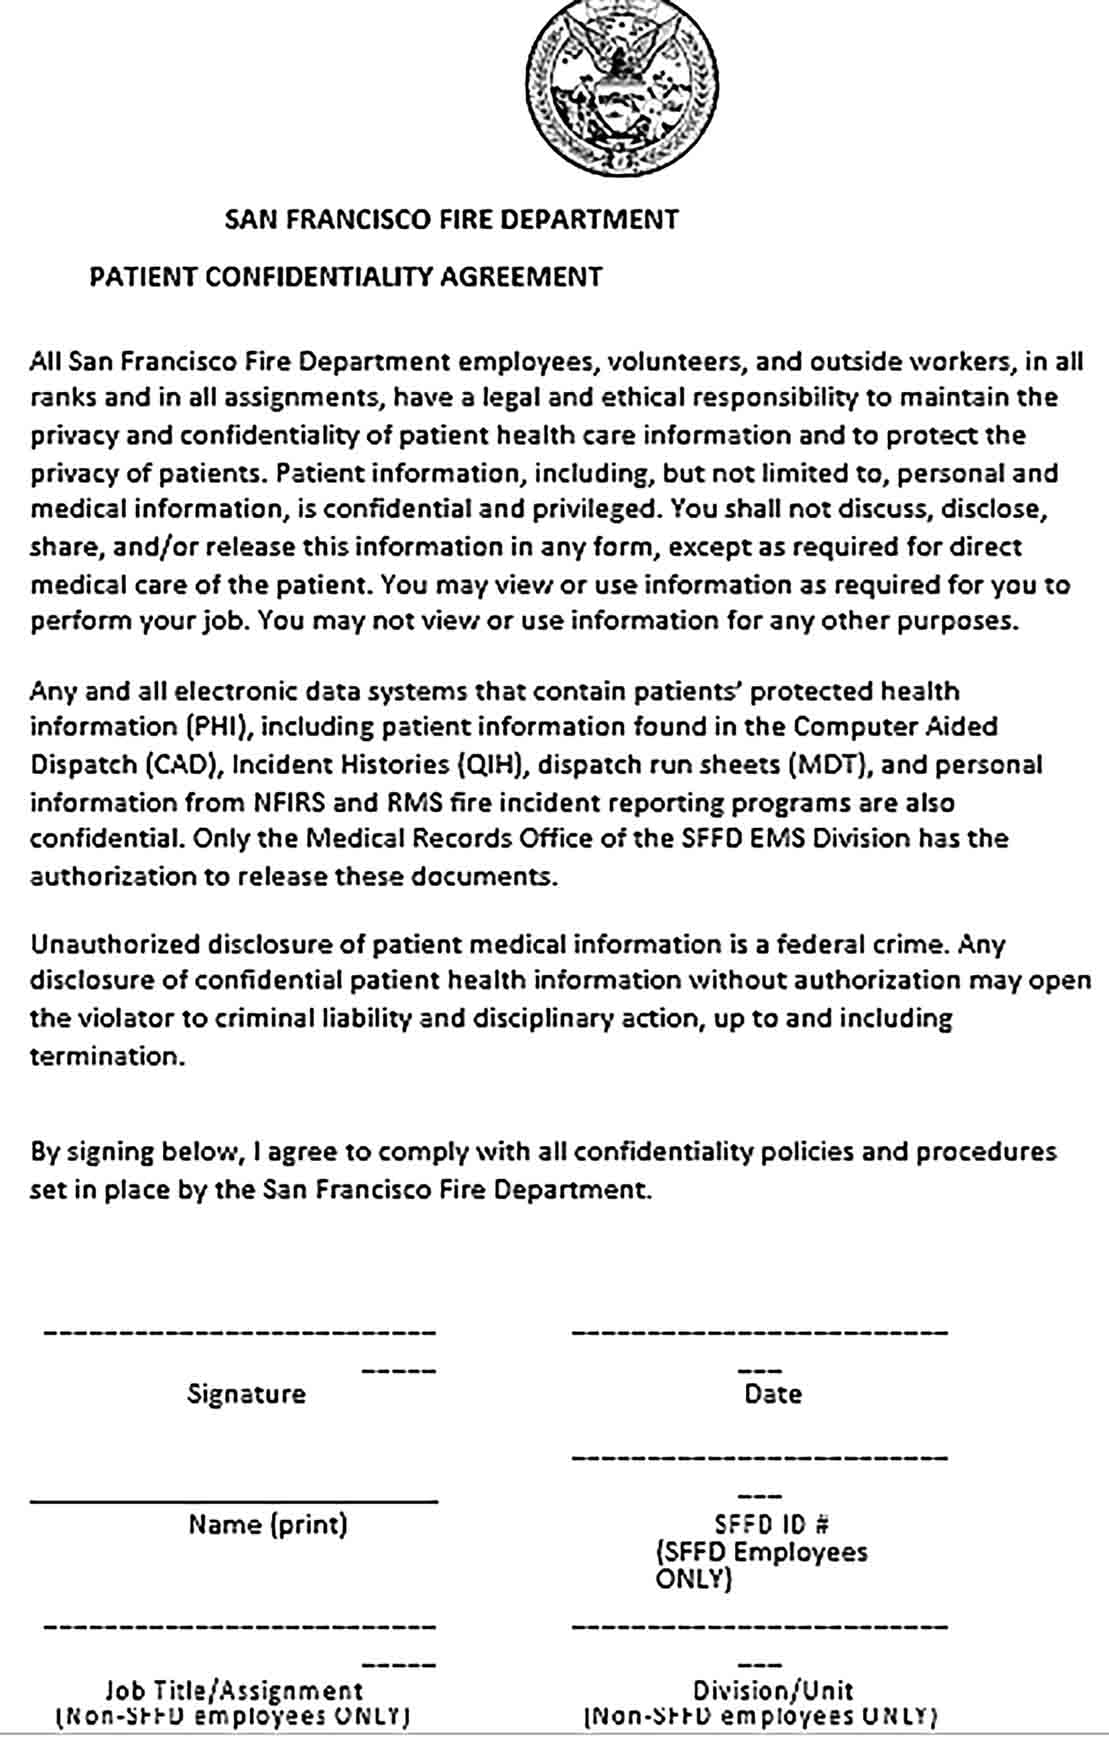 Sample Patient Confidentiality Agreement Form